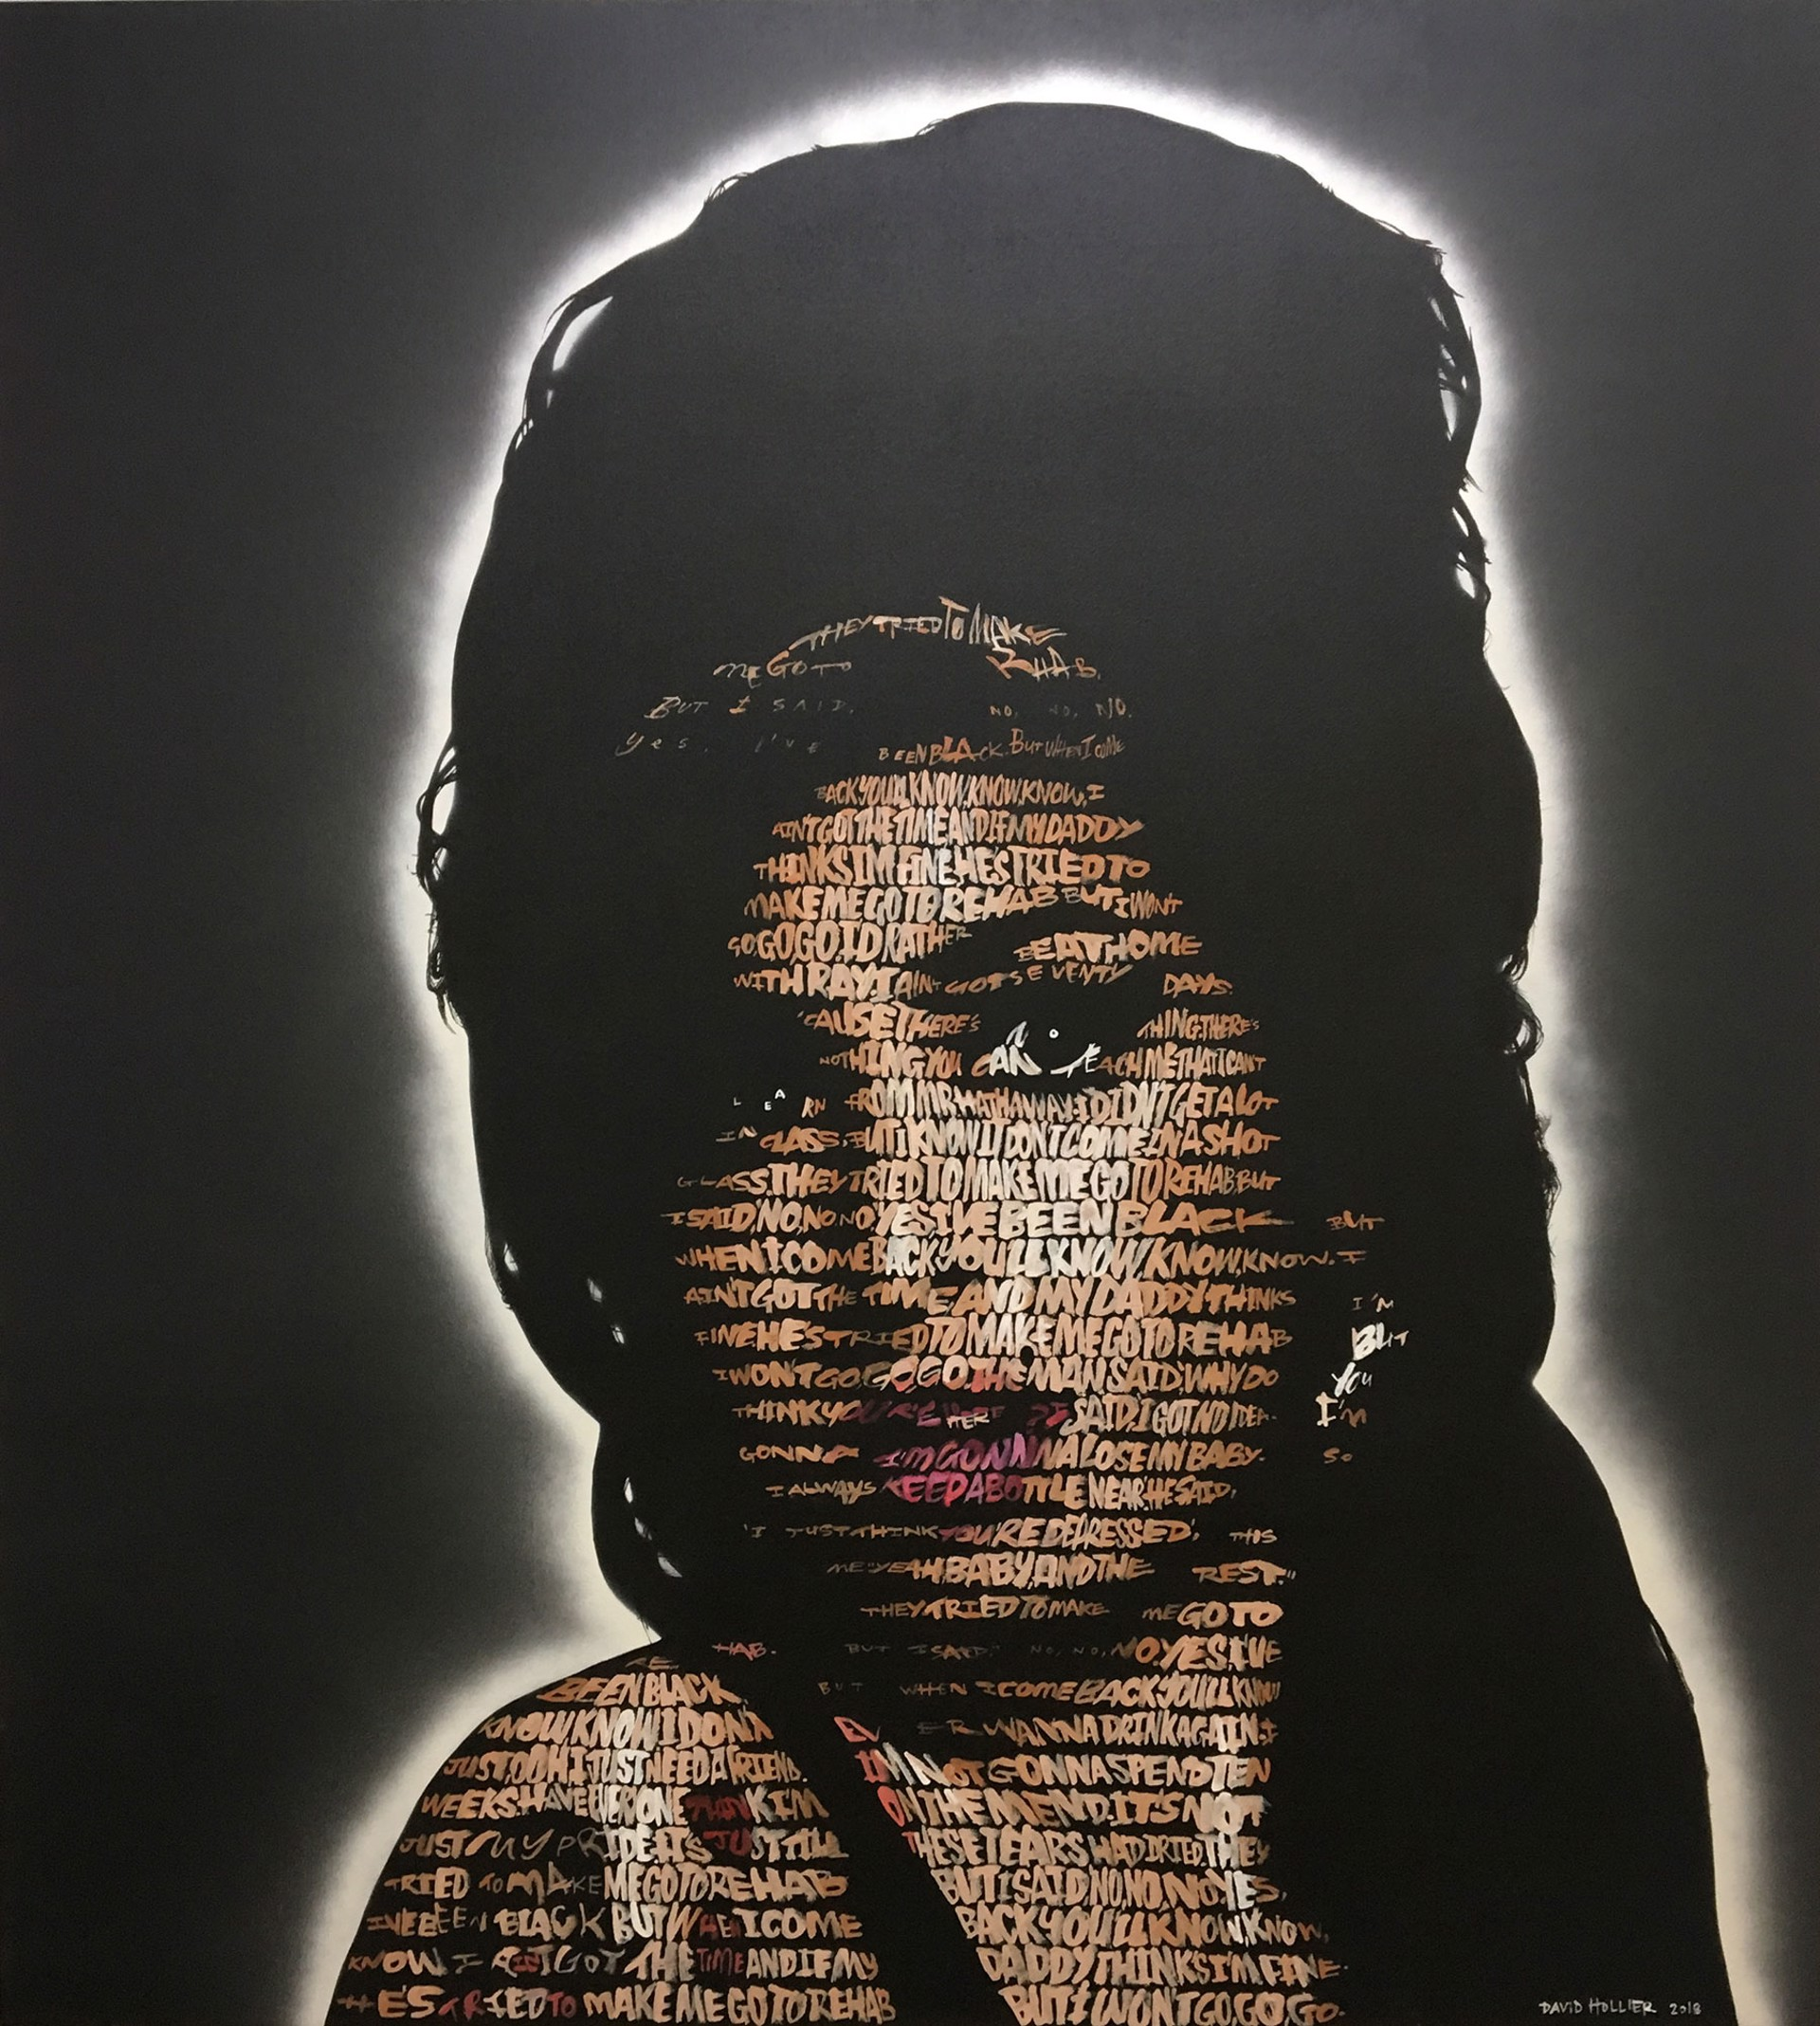 Amy Winehouse (Text: Rehab) by David Hollier